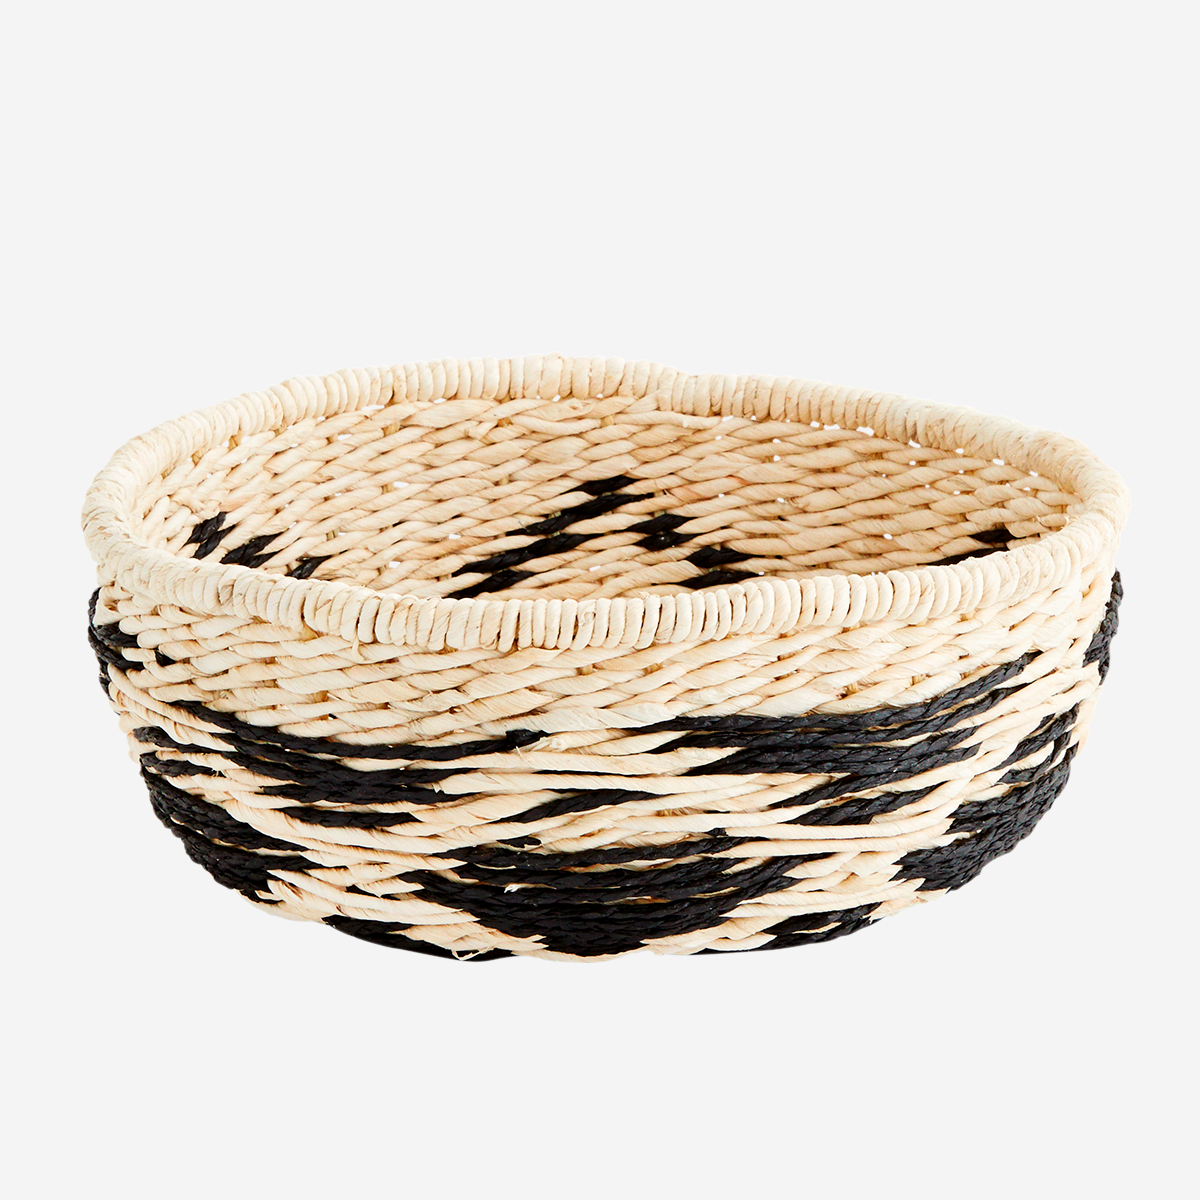 Paper wicker bowl